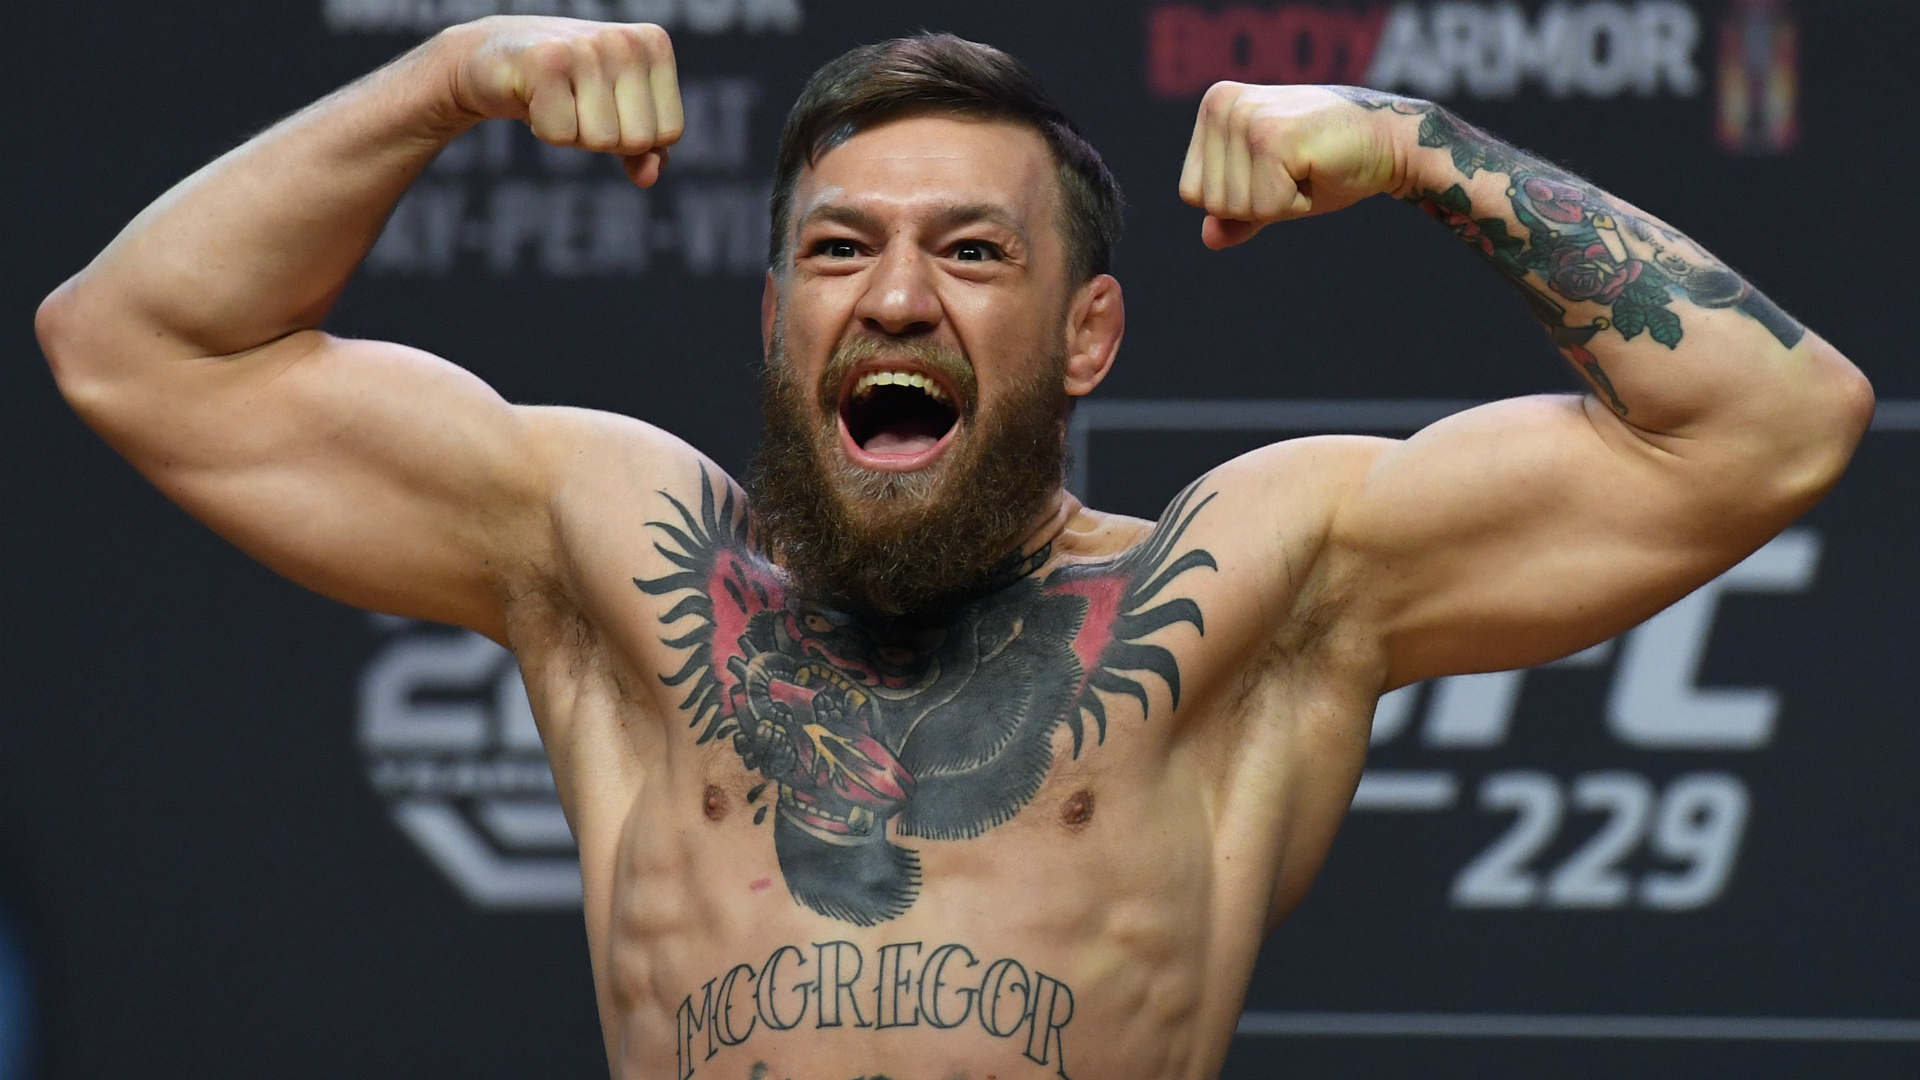 McGregor: Retirement? I'll fight until the day I die